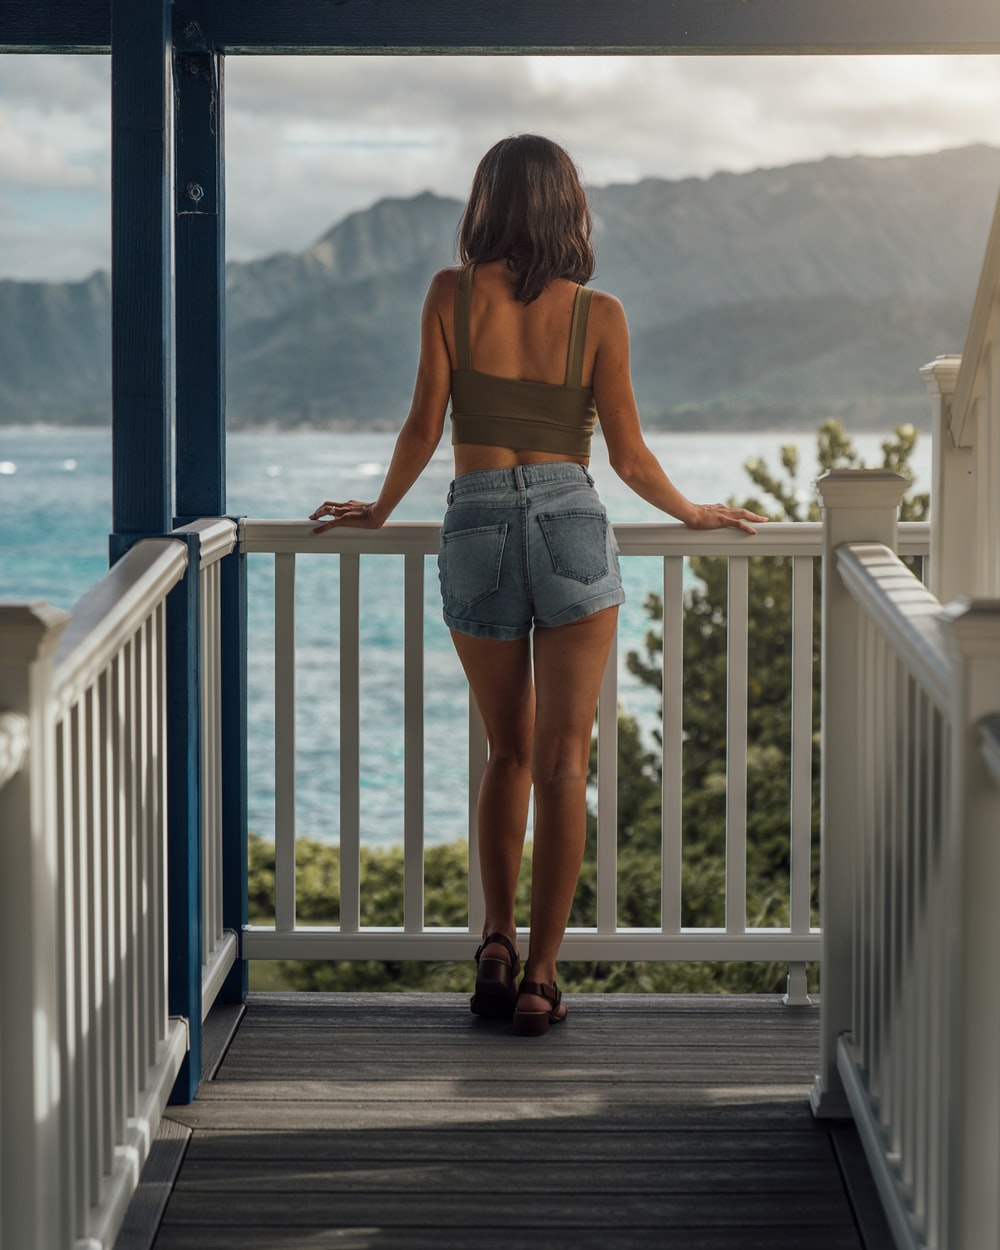 woman standing and holding handrail overlooking body of water during daytime